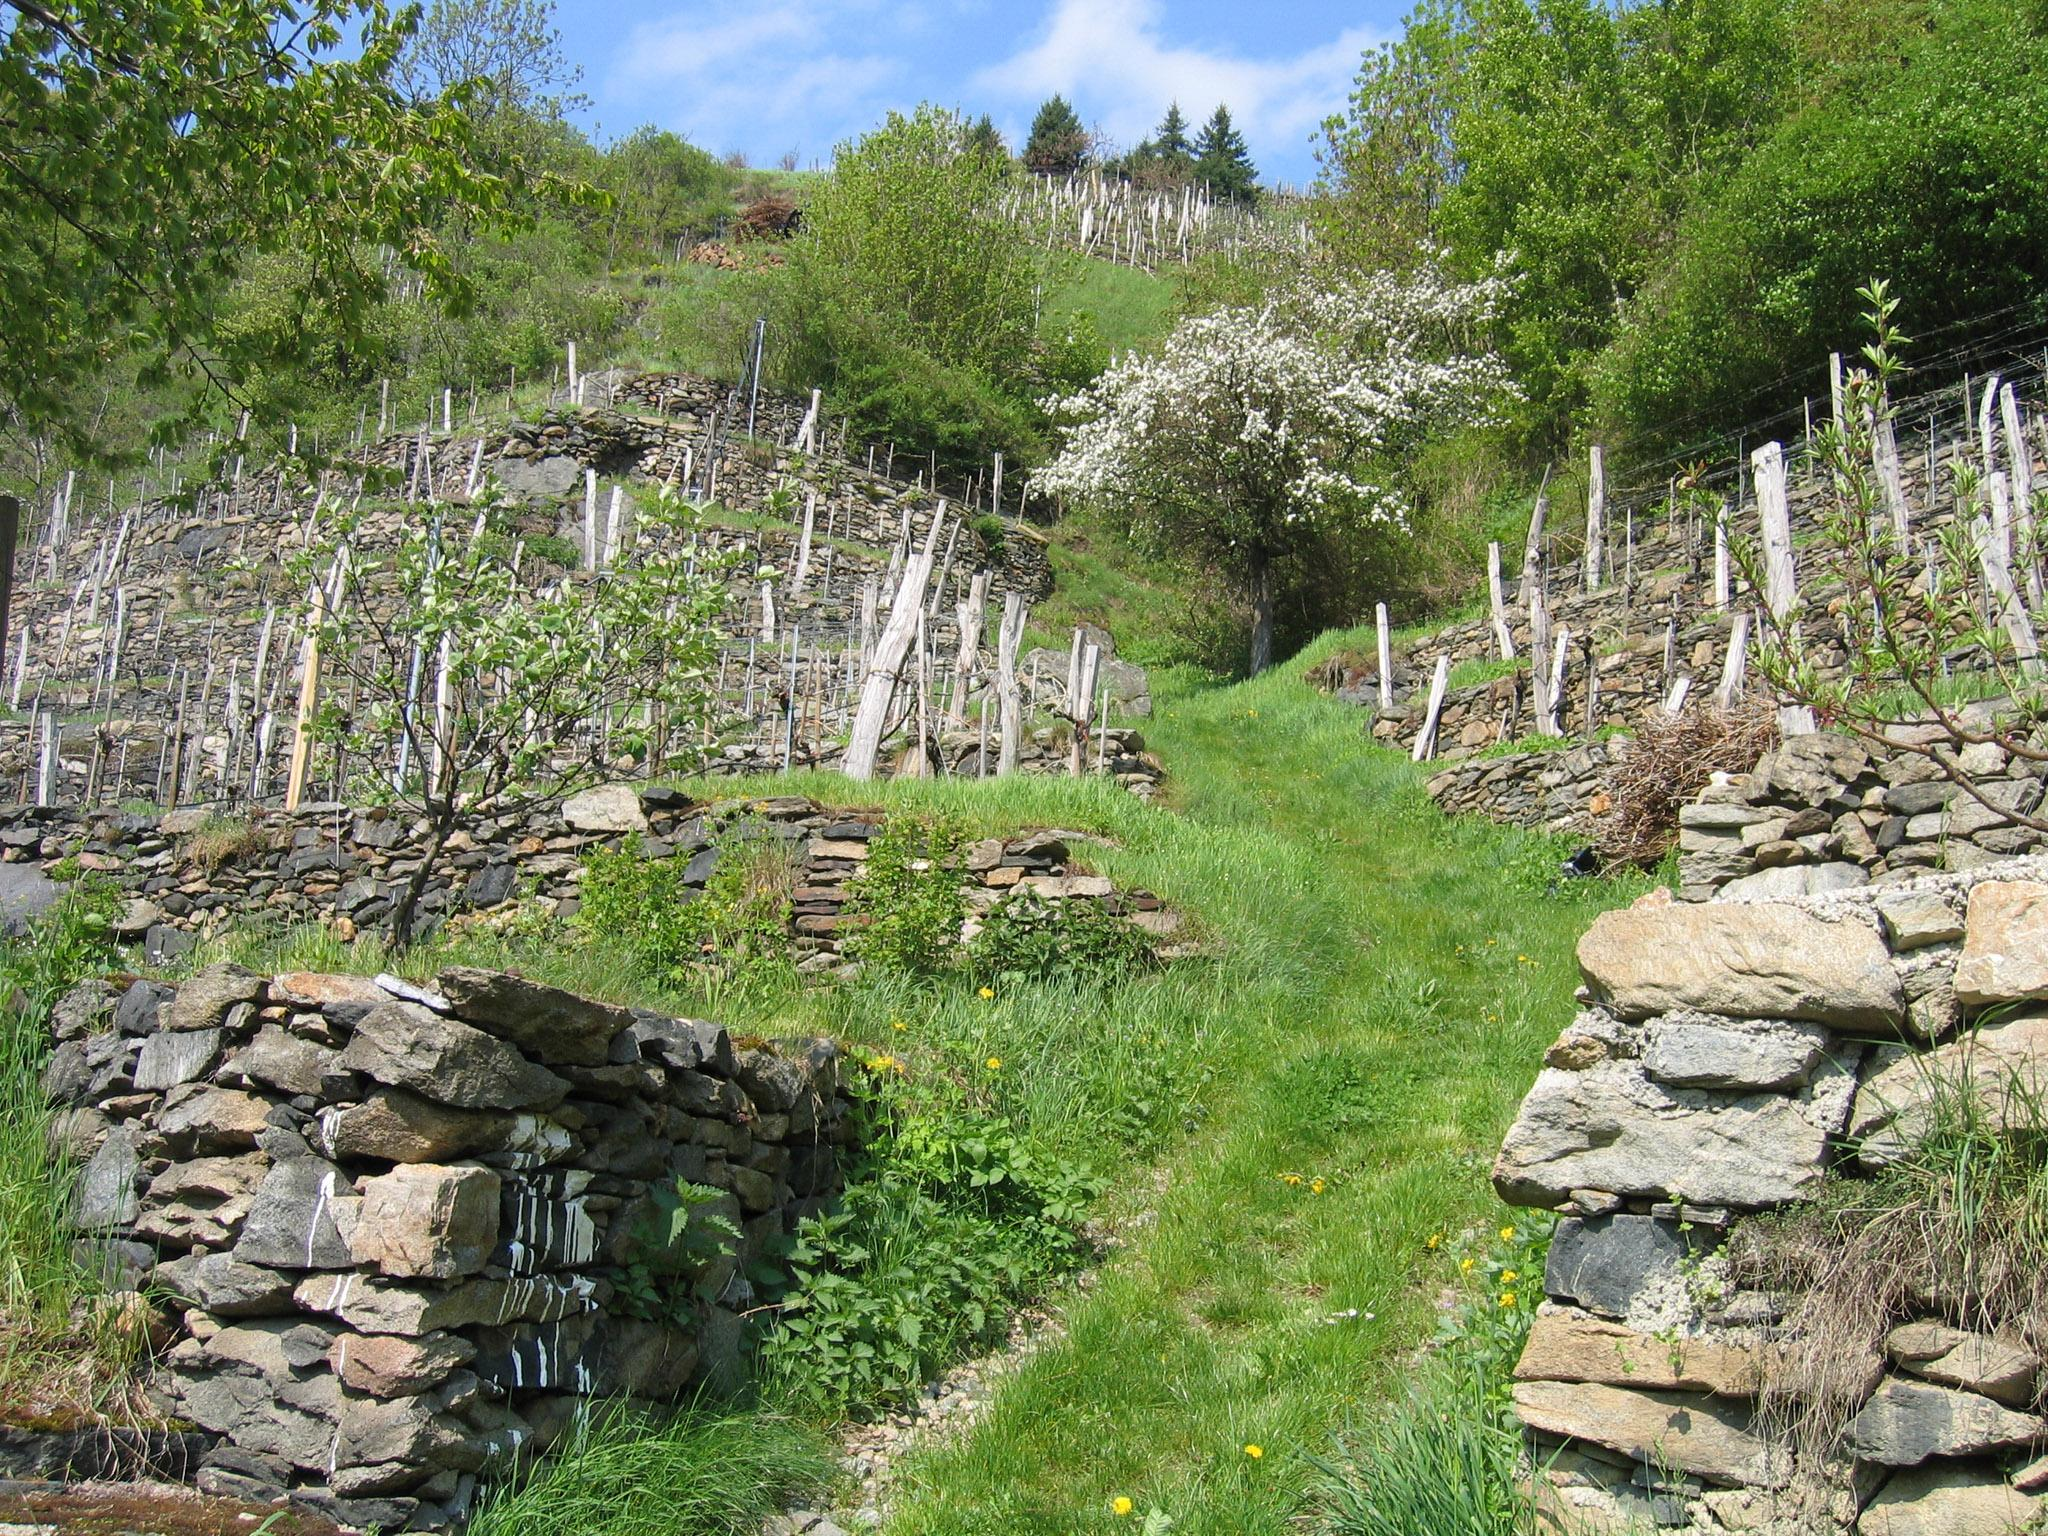 Some of the drystone wall vineyard terraces have been kept in situ for more than 1,000 years. – © Michael Schimek